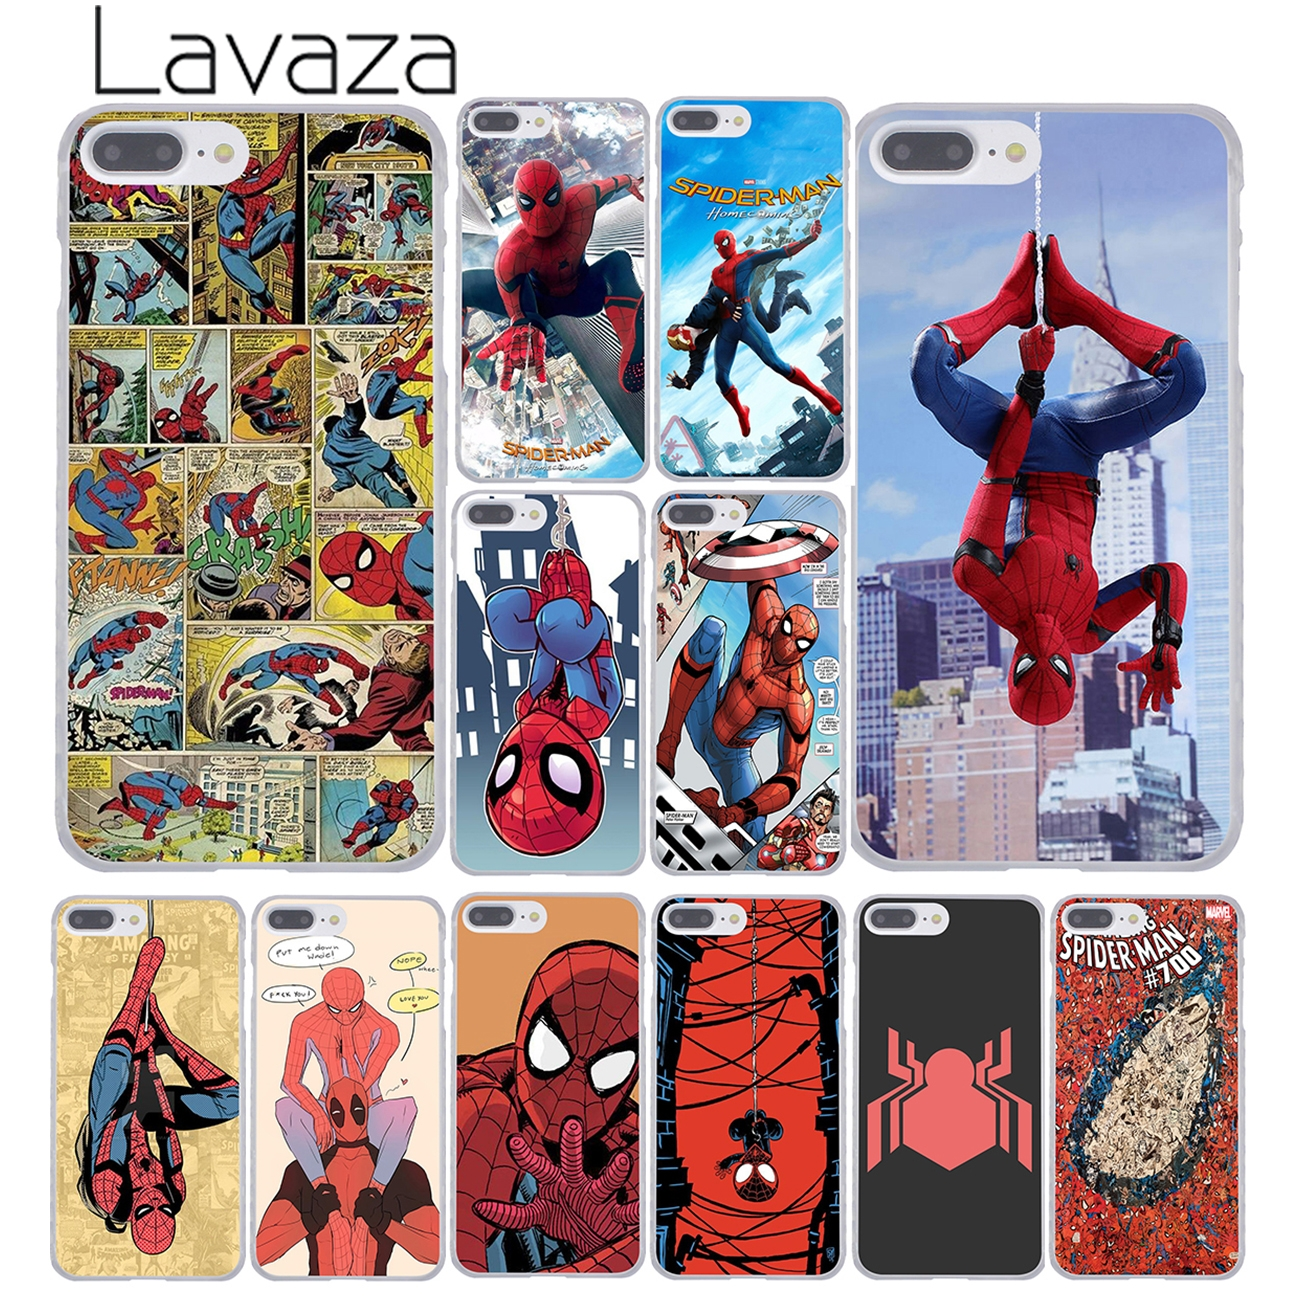 Lavaza Spider Man Marvel Spider Man Homecoming Comics Phone Case for iPhone XR XS Max X 8 7 6 6S